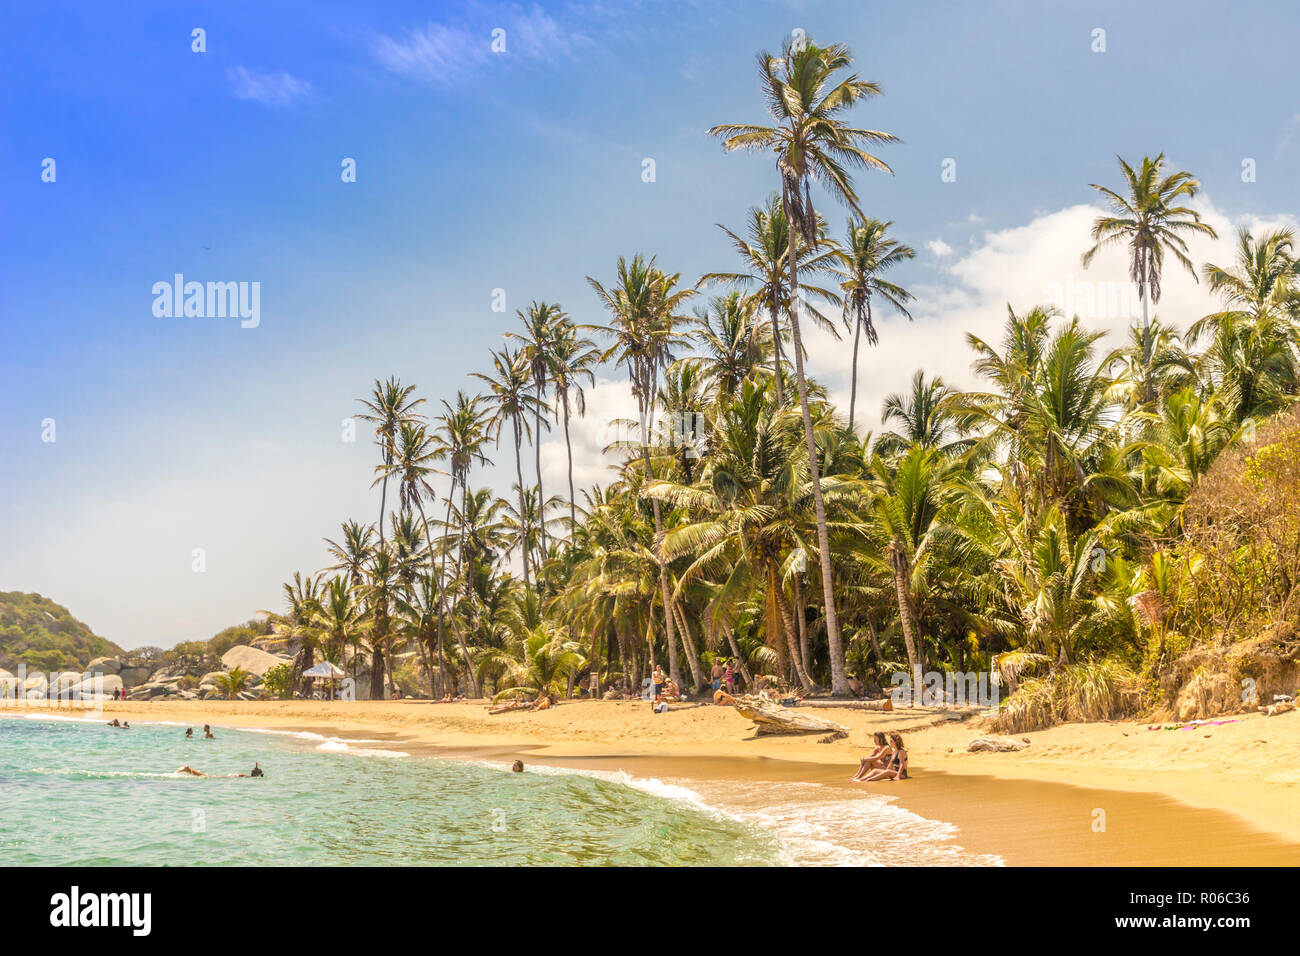 A view of the Caribbean beach at Cabo San Juan in Tayrona National Park, Colombia, South America - Stock Image